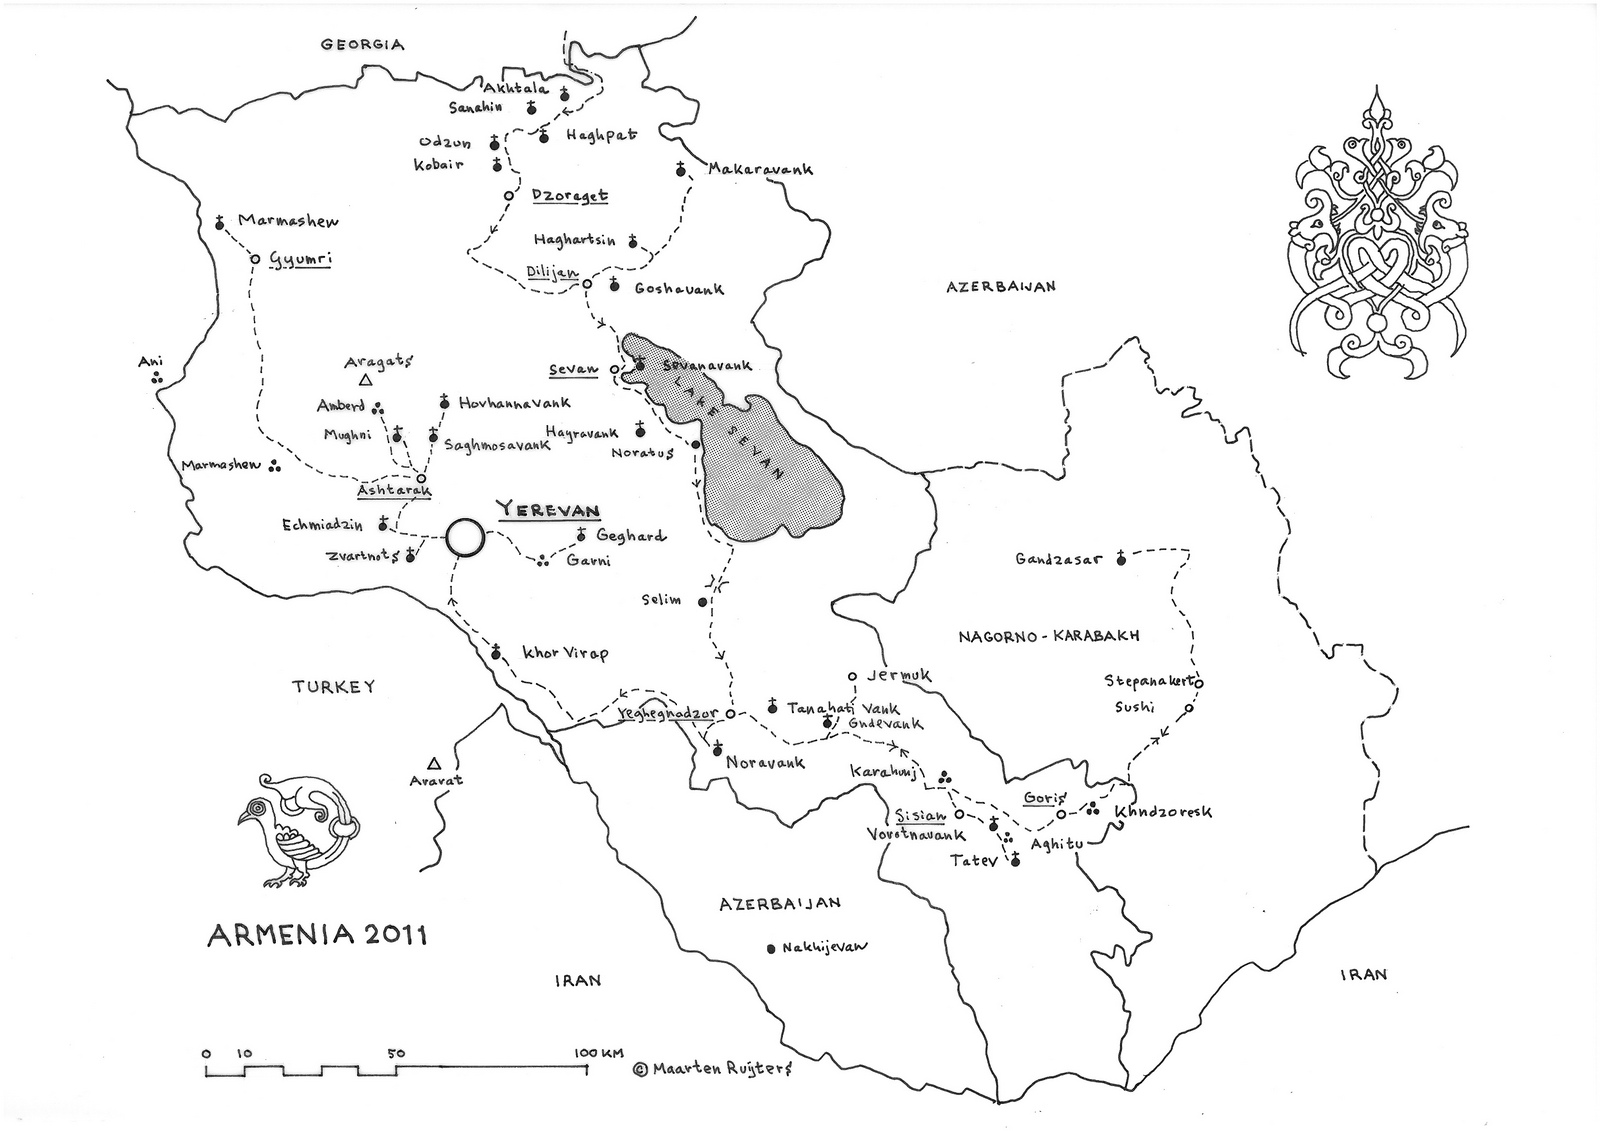 Travel routes in Armenia